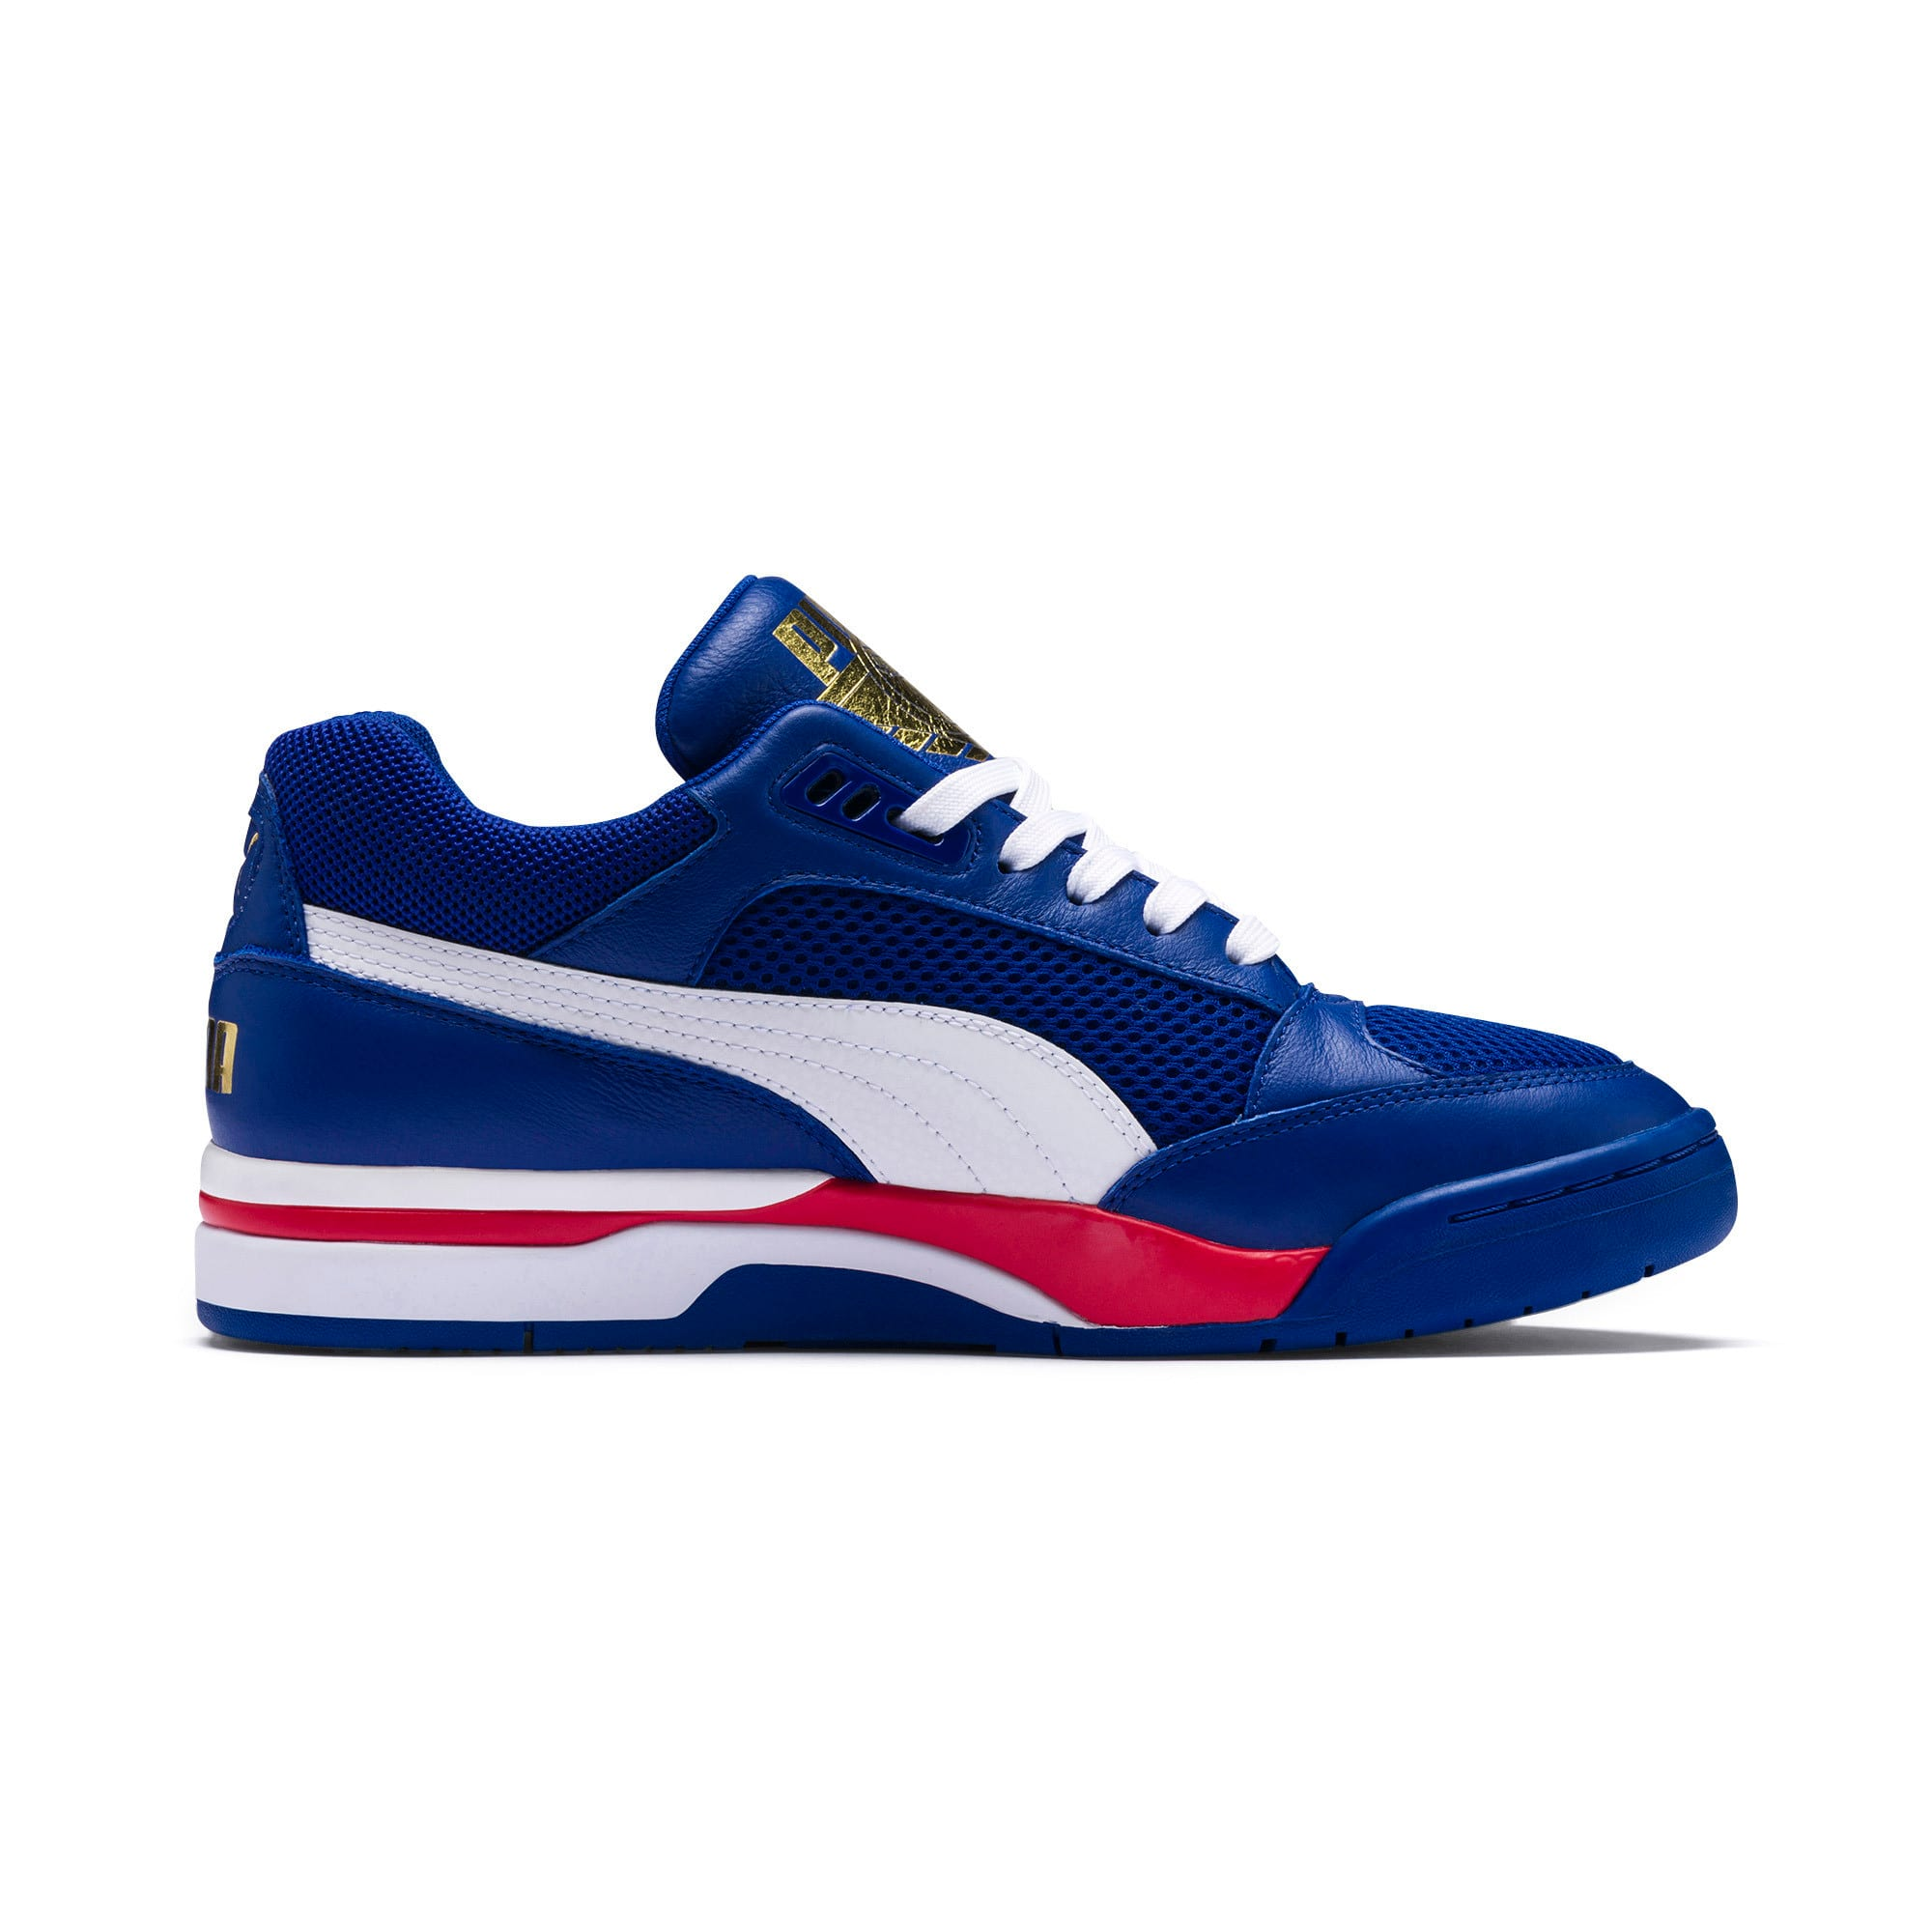 Thumbnail 5 of Palace Guard Finals Trainers, Surf The Web-Puma White-, medium